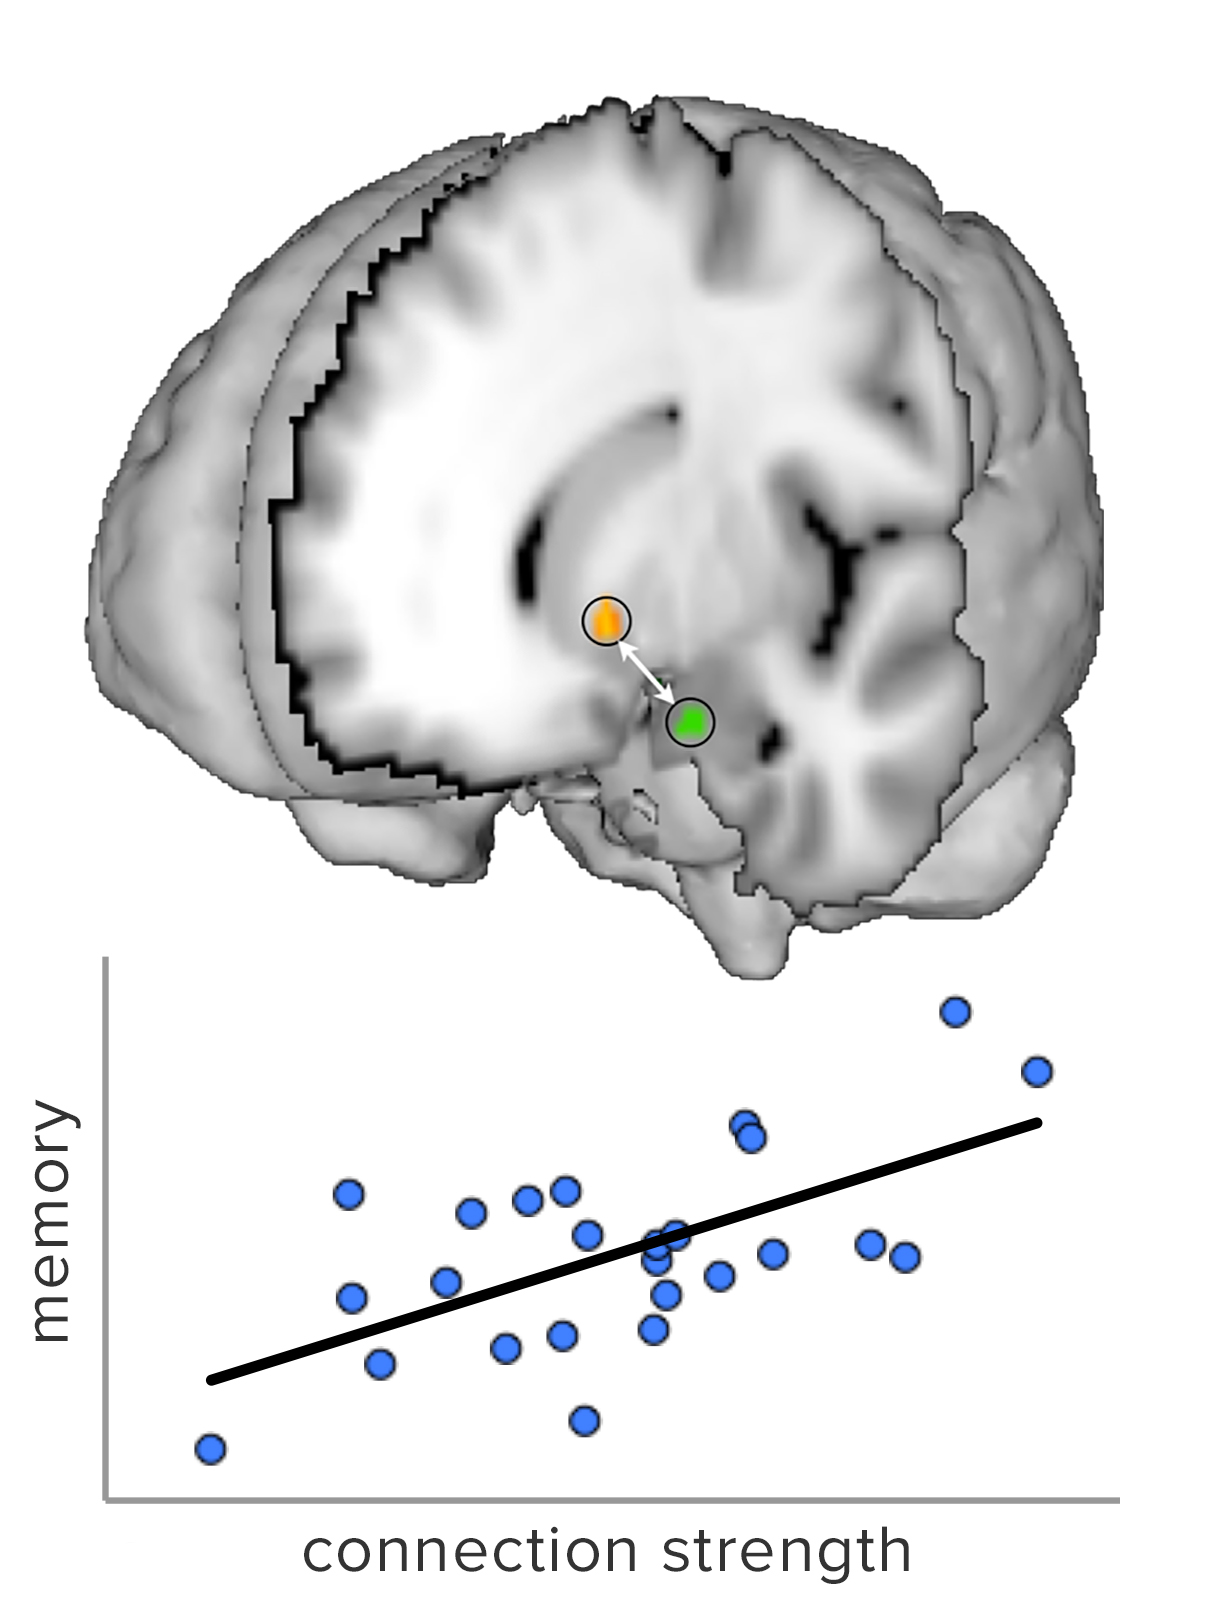 Image of braing highlighting connection between activity in the striatum and hippocampus, and graph that shows how strength of connection enhances memory in adolescents